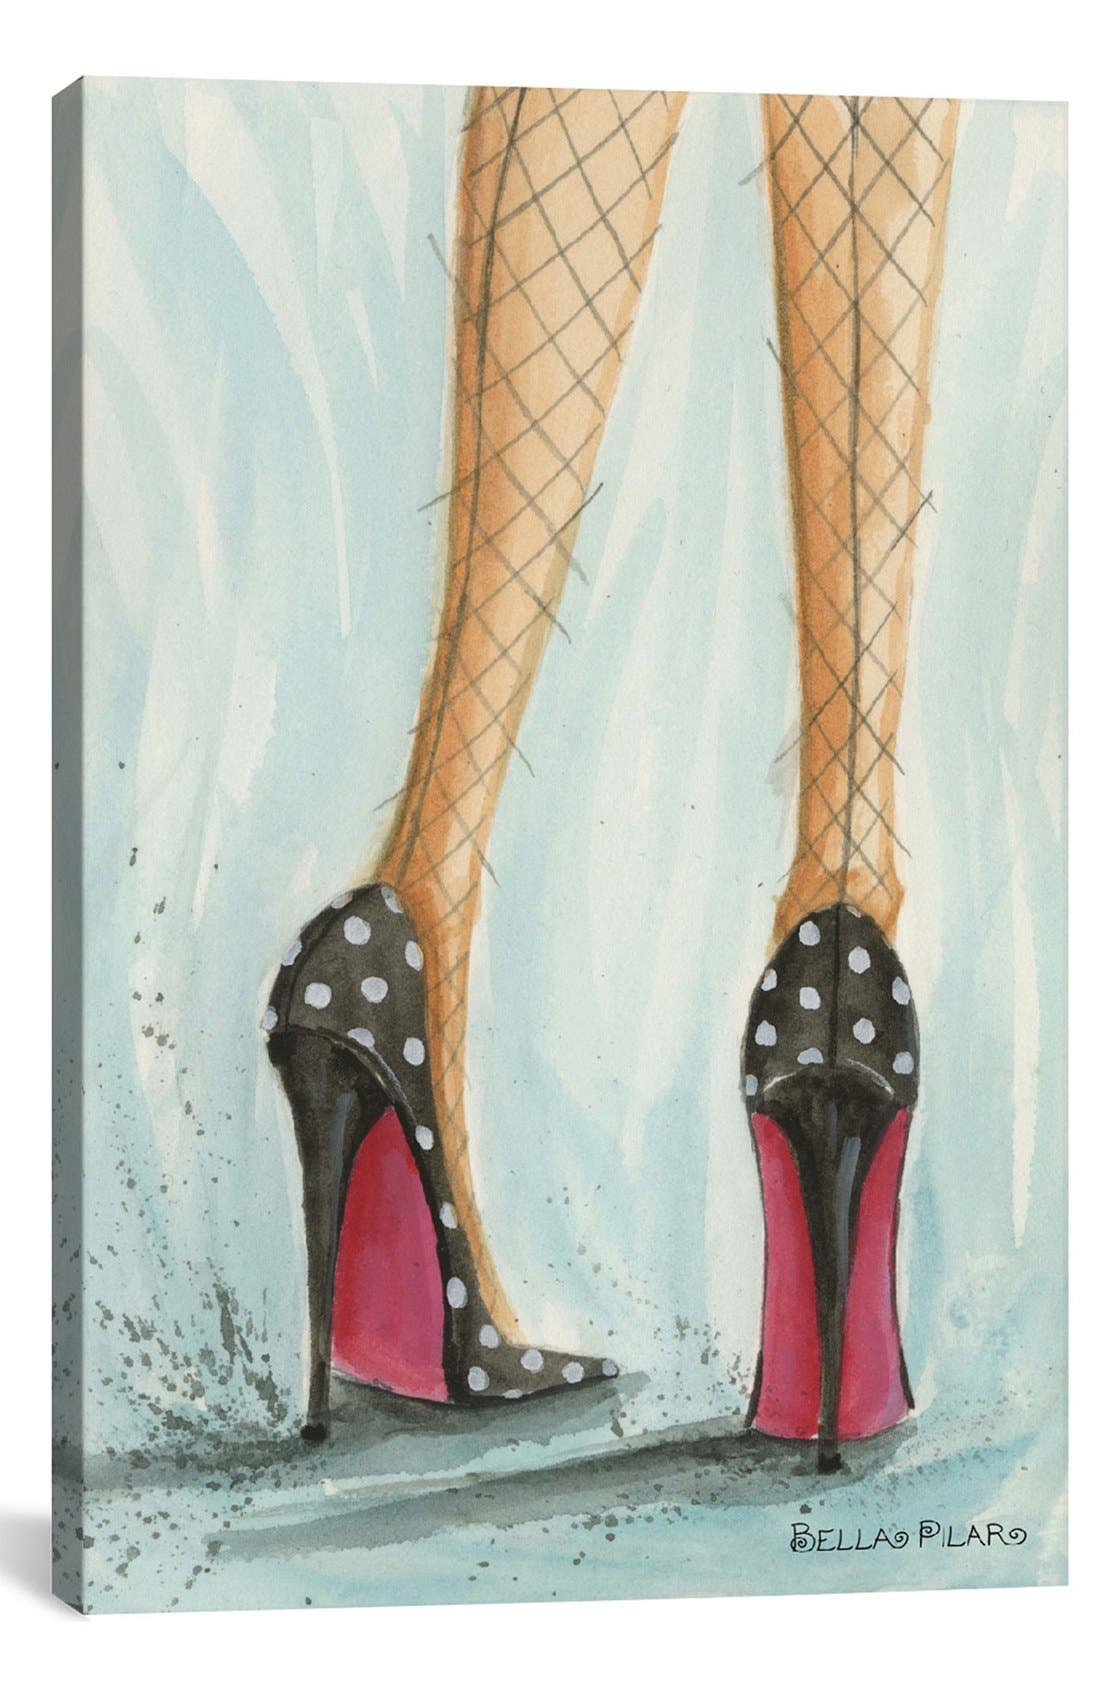 'Date Night: Polka Dot Heels - Bella Pilar' Giclée Print Canvas Art,                         Main,                         color, 400